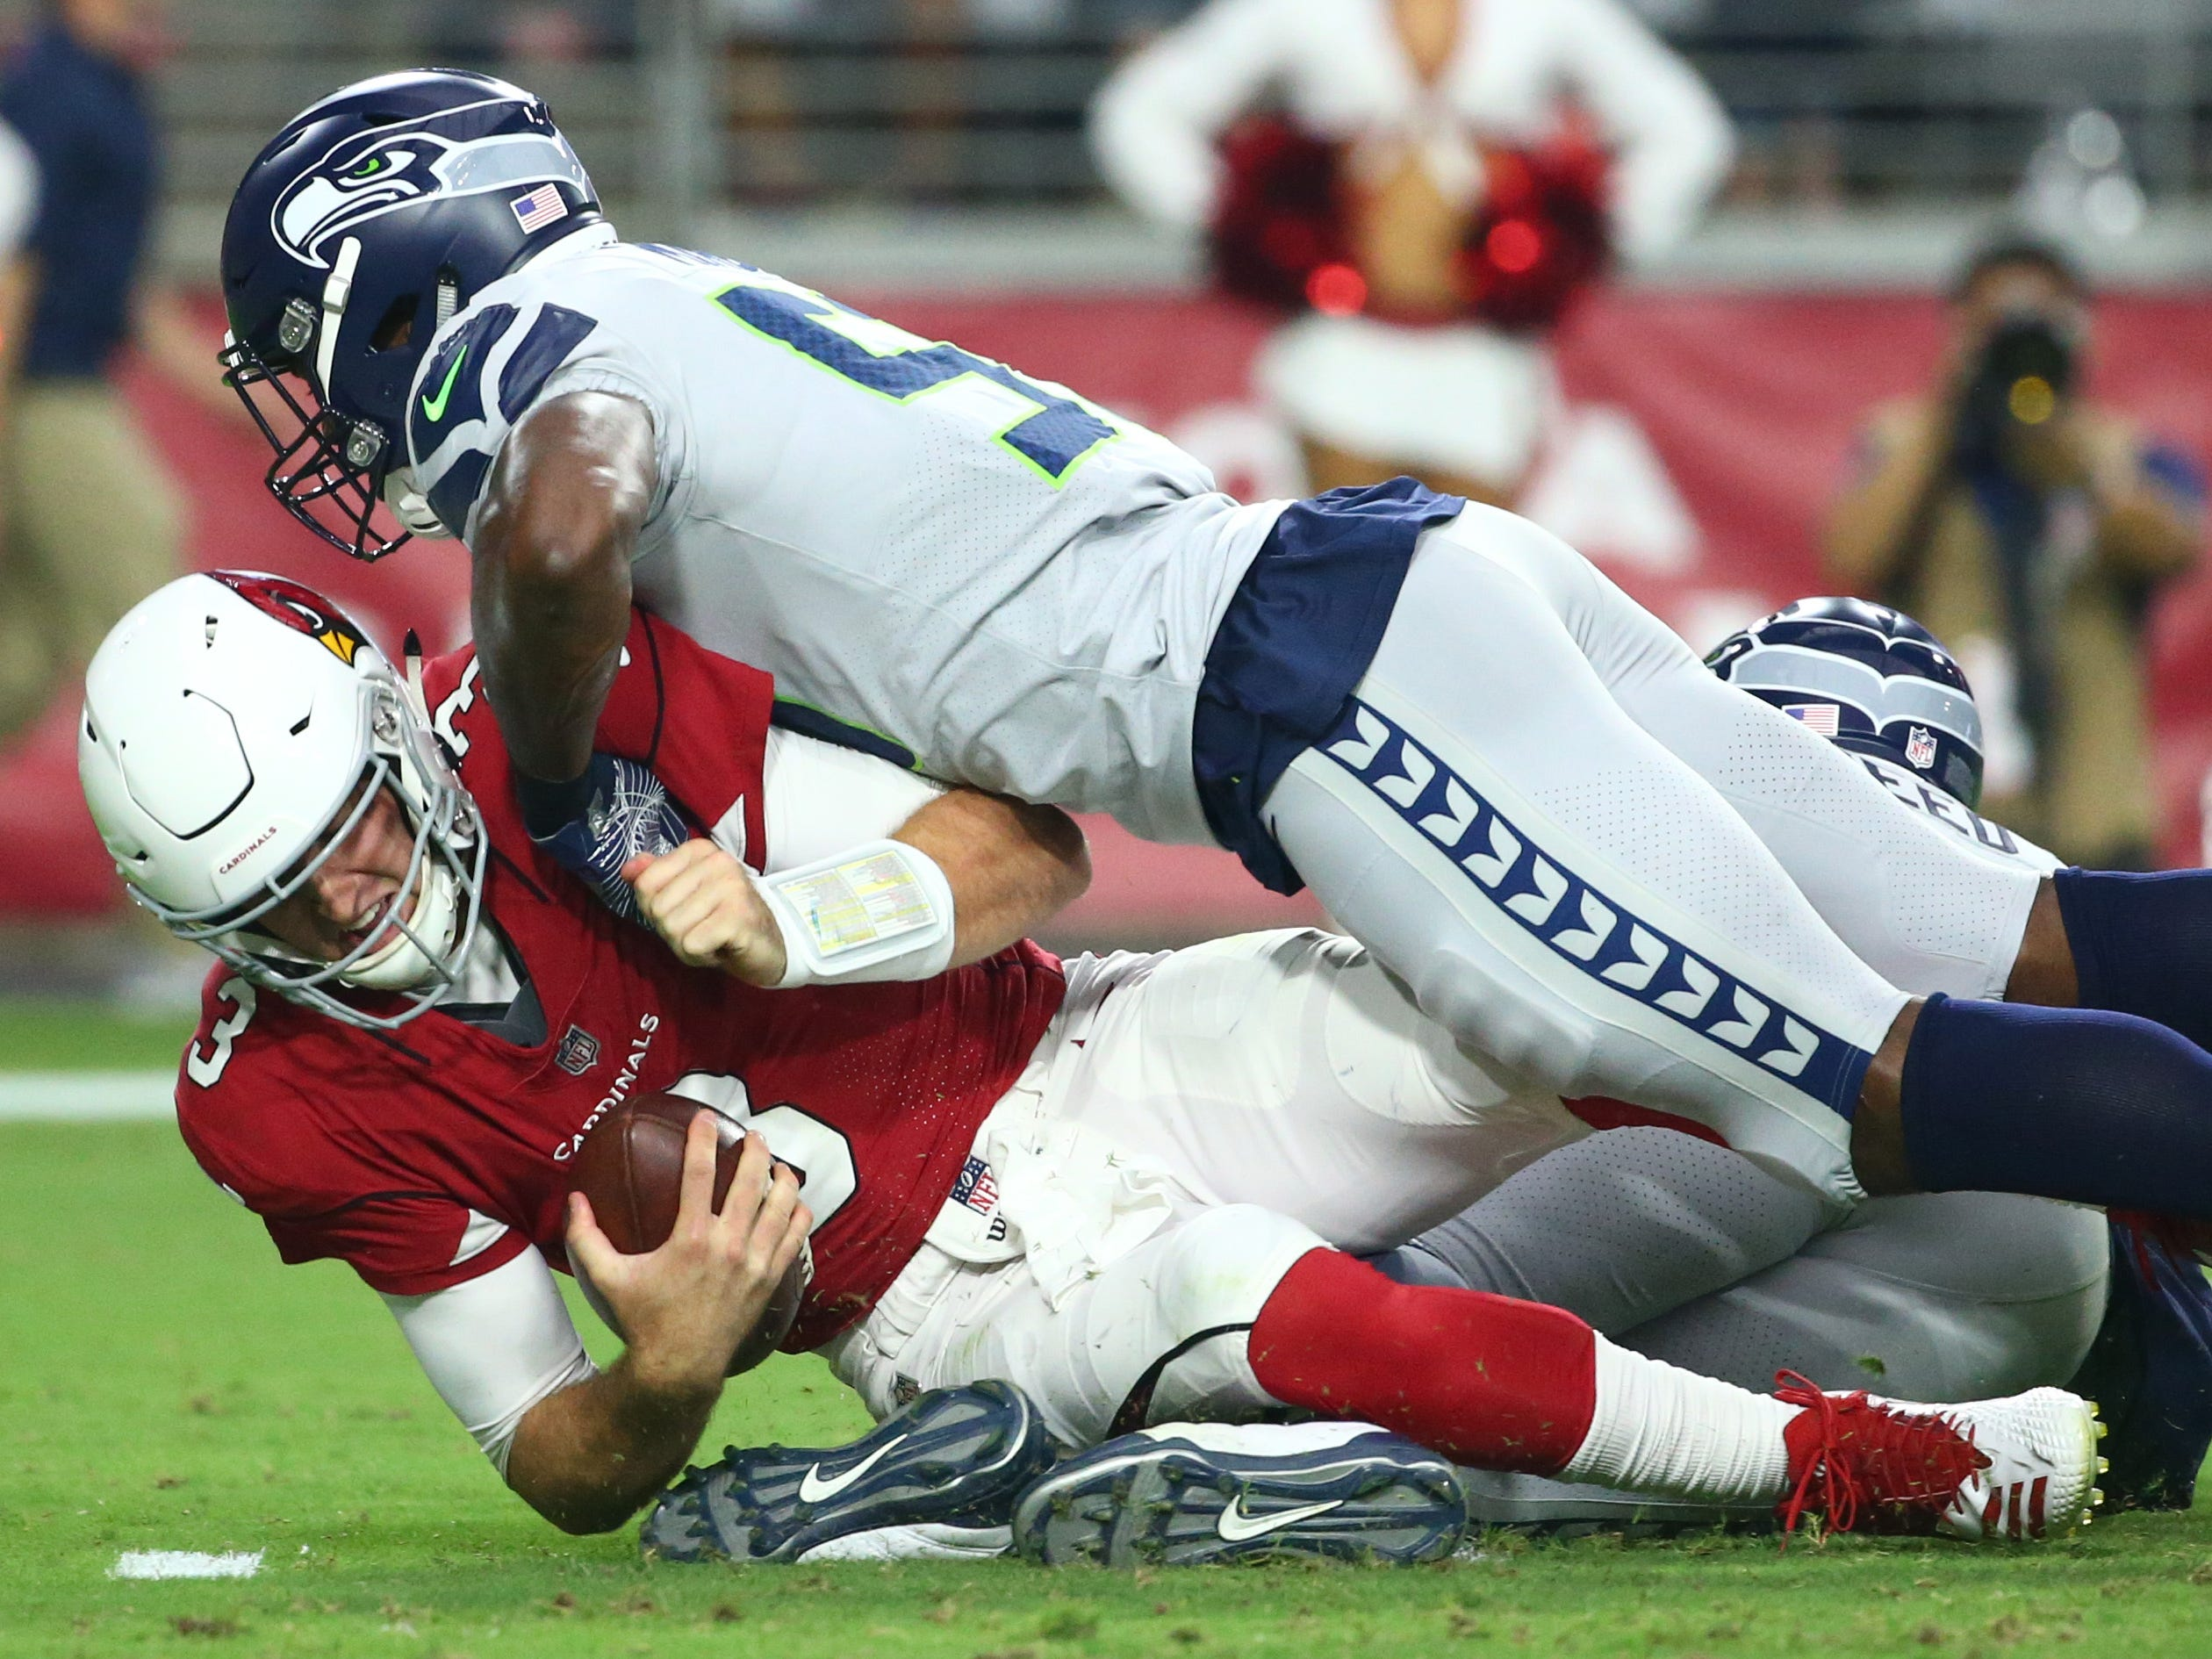 Arizona Cardinals quarterback Josh Rosen is sacked by Seattle Seahawks linebacker Barkevious Mingo in the first half at State Farm Stadium in Glendale, Ariz.